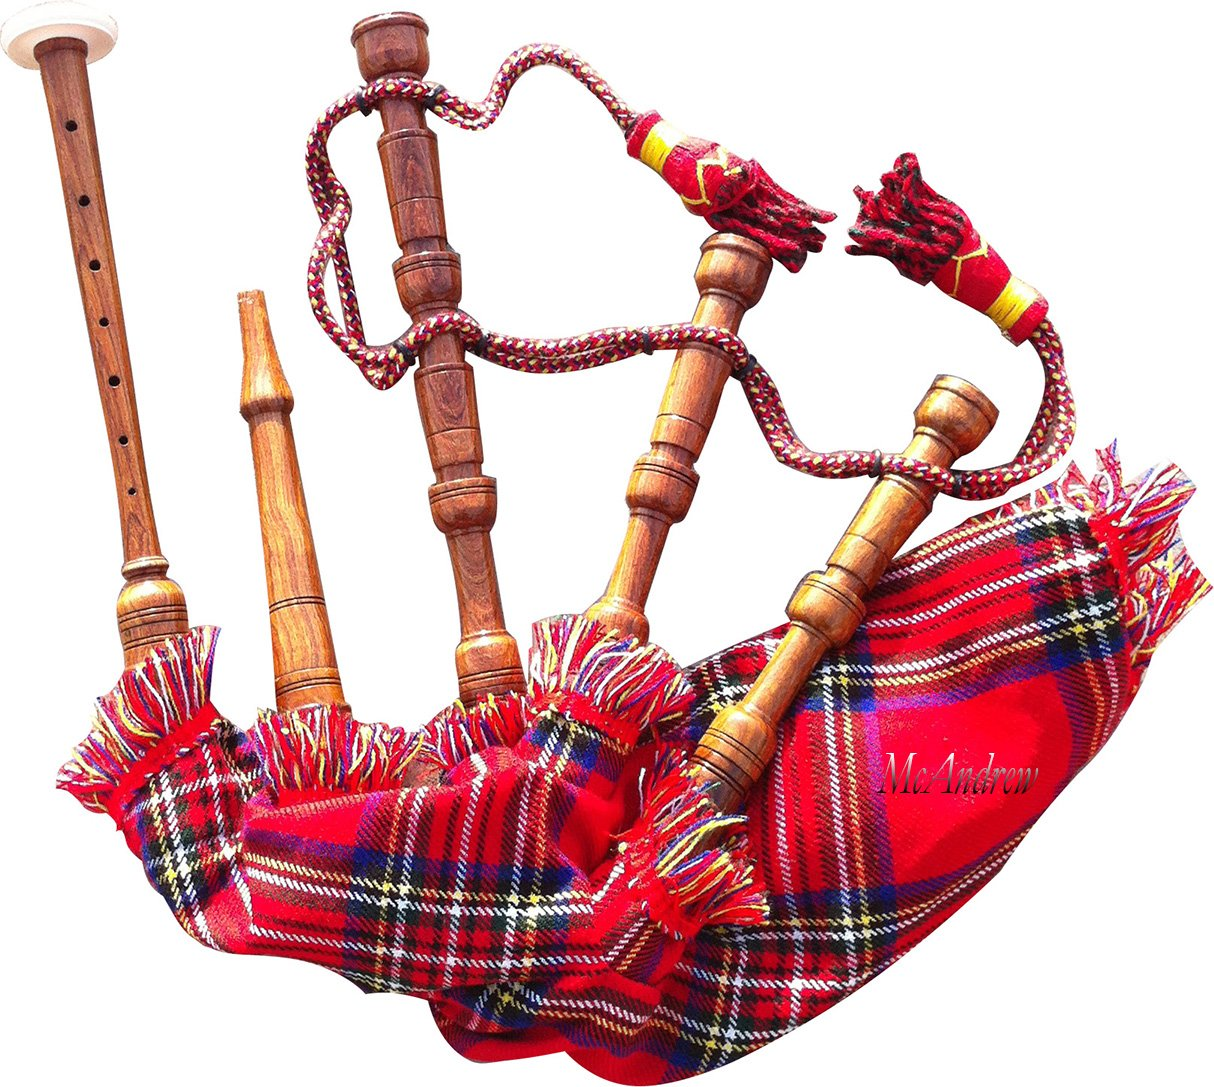 McAndrew New Baby Mini Bagpipe Toy Playable Beginner Kids Rose wood Royal Stewart Cover & Cord Free 2 Reed Albana Musics